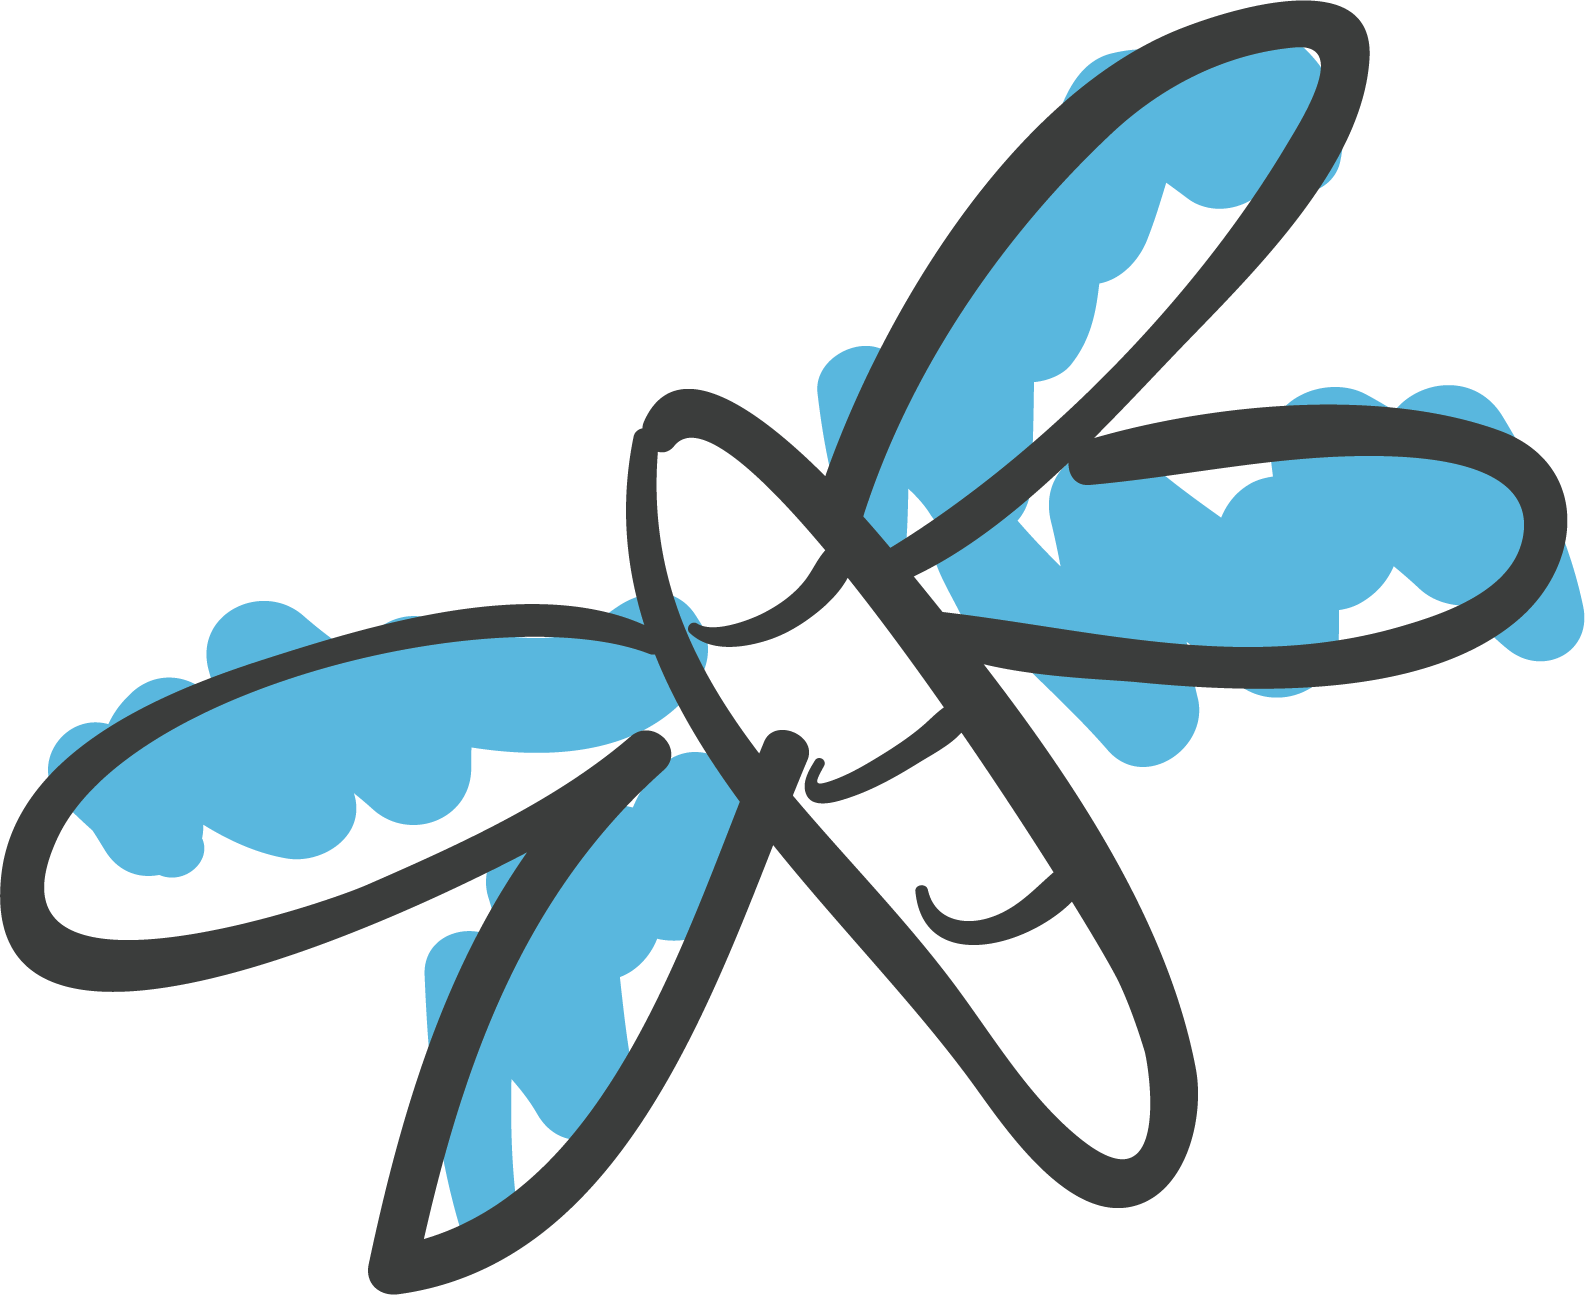 Dragonfly clipart creative. Butterfly clip art transprent